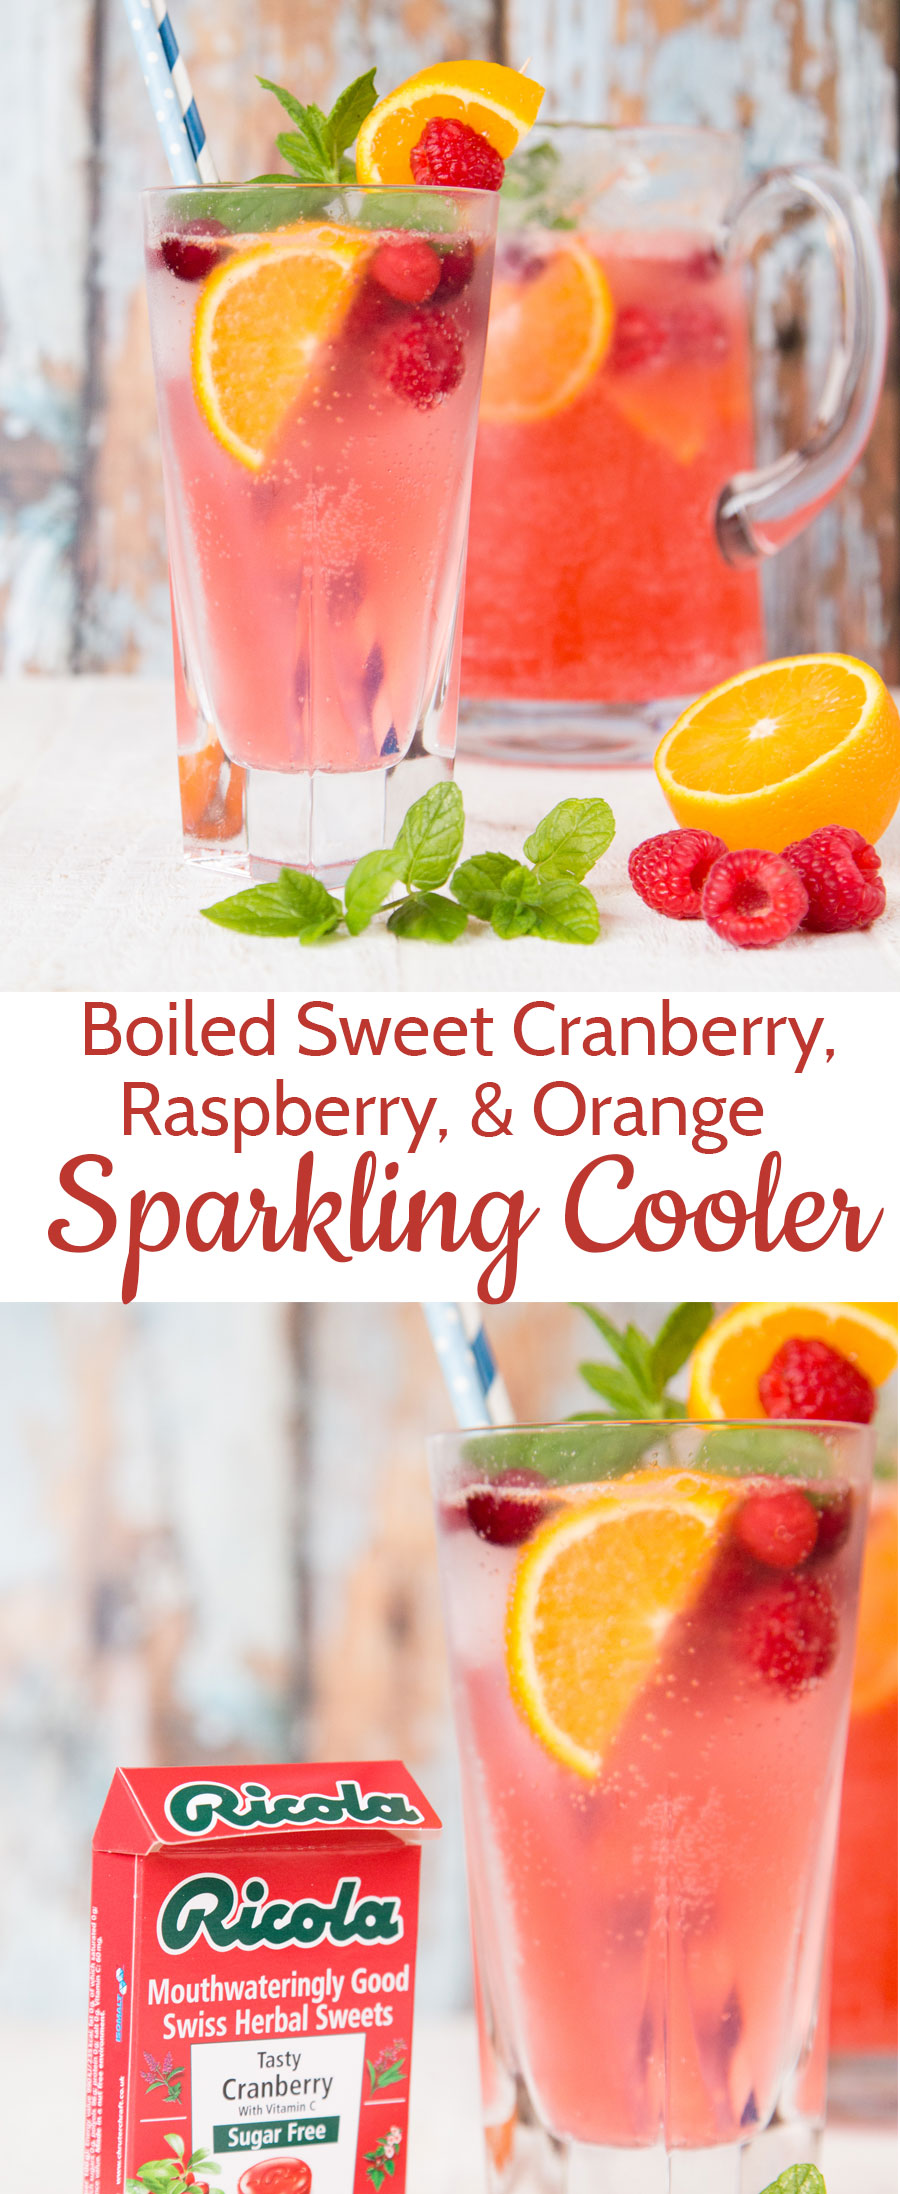 This refreshing herbal cranberry, raspberry and orange mocktail is made with a surprising secret ingredient - Ricola boiled sweets!